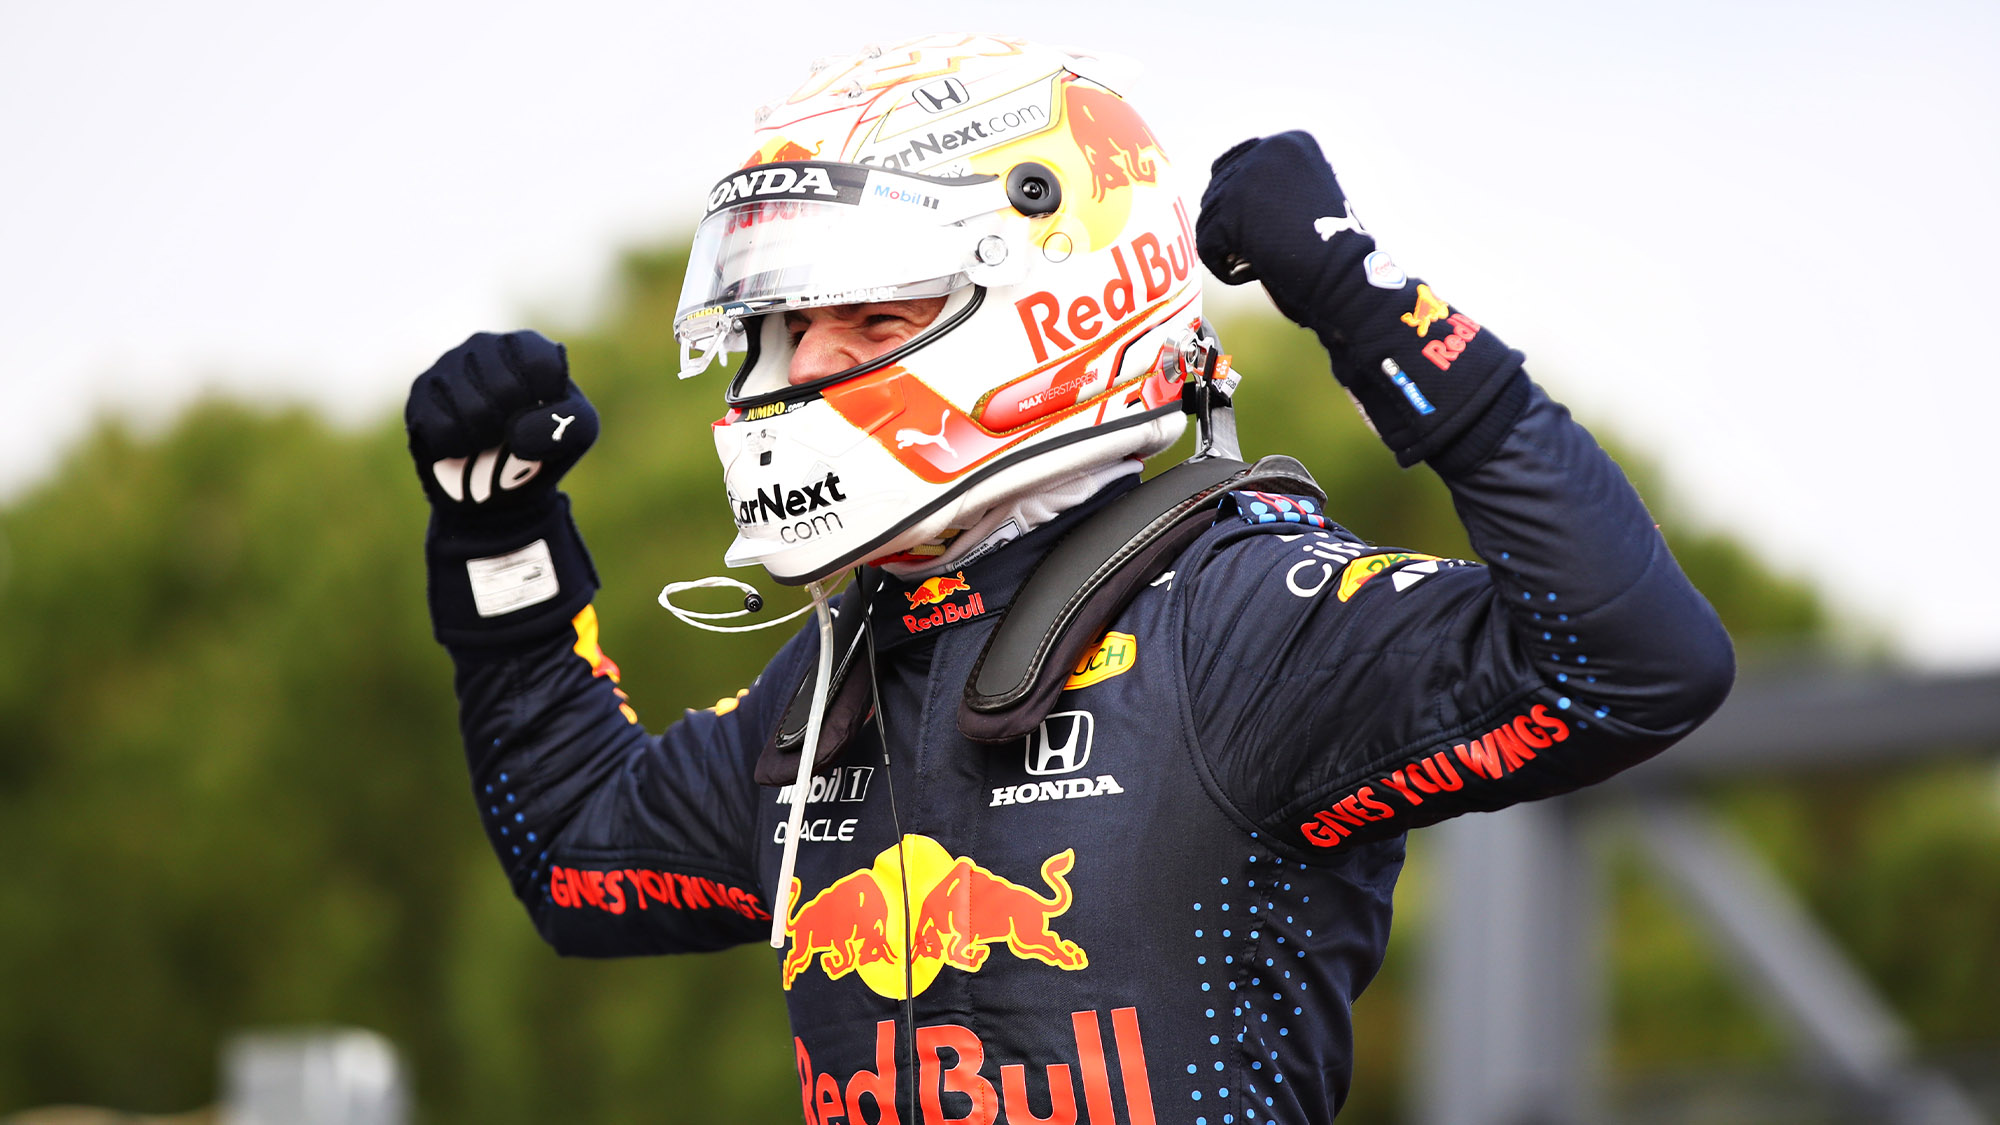 Verstappen hits back as Hamilton stutters: 2021 Emilia Romagna GP lap by lap